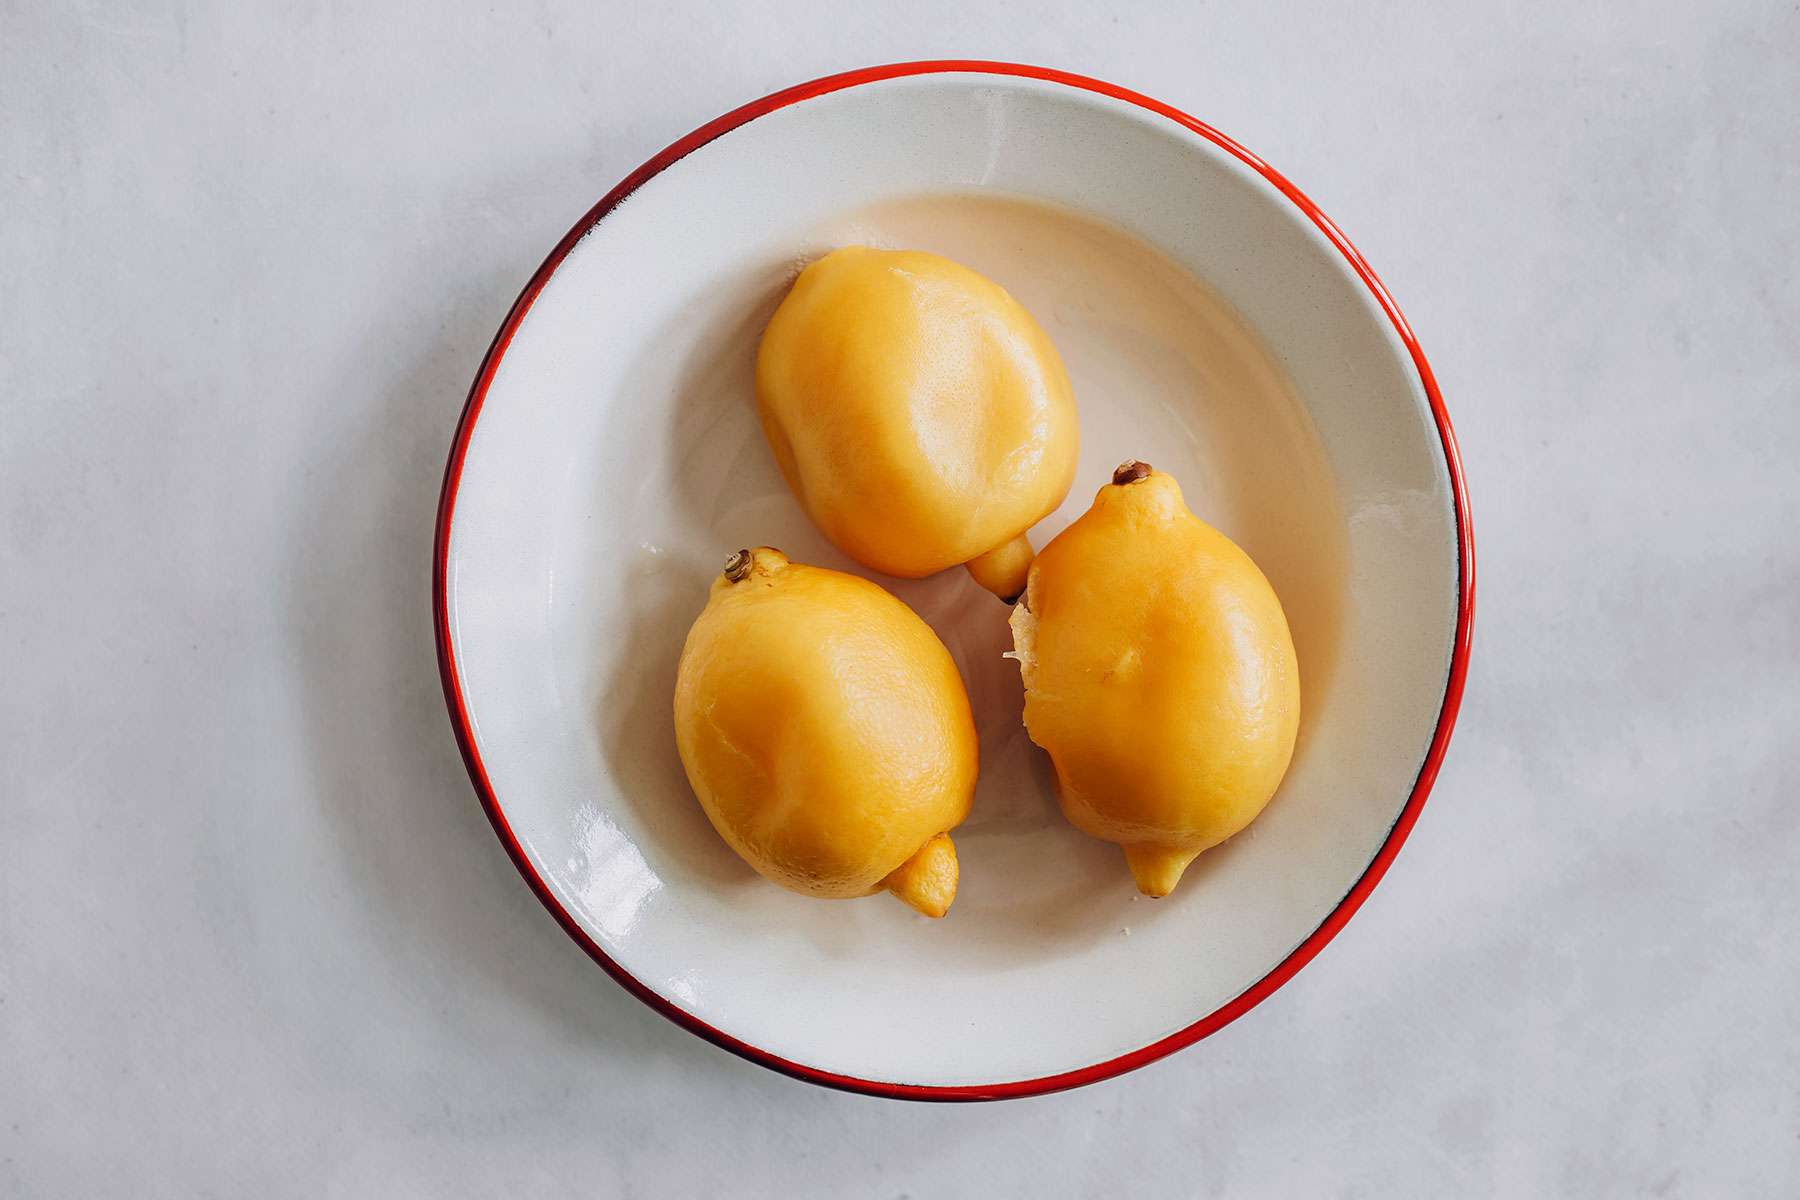 Simmered lemons on a plate